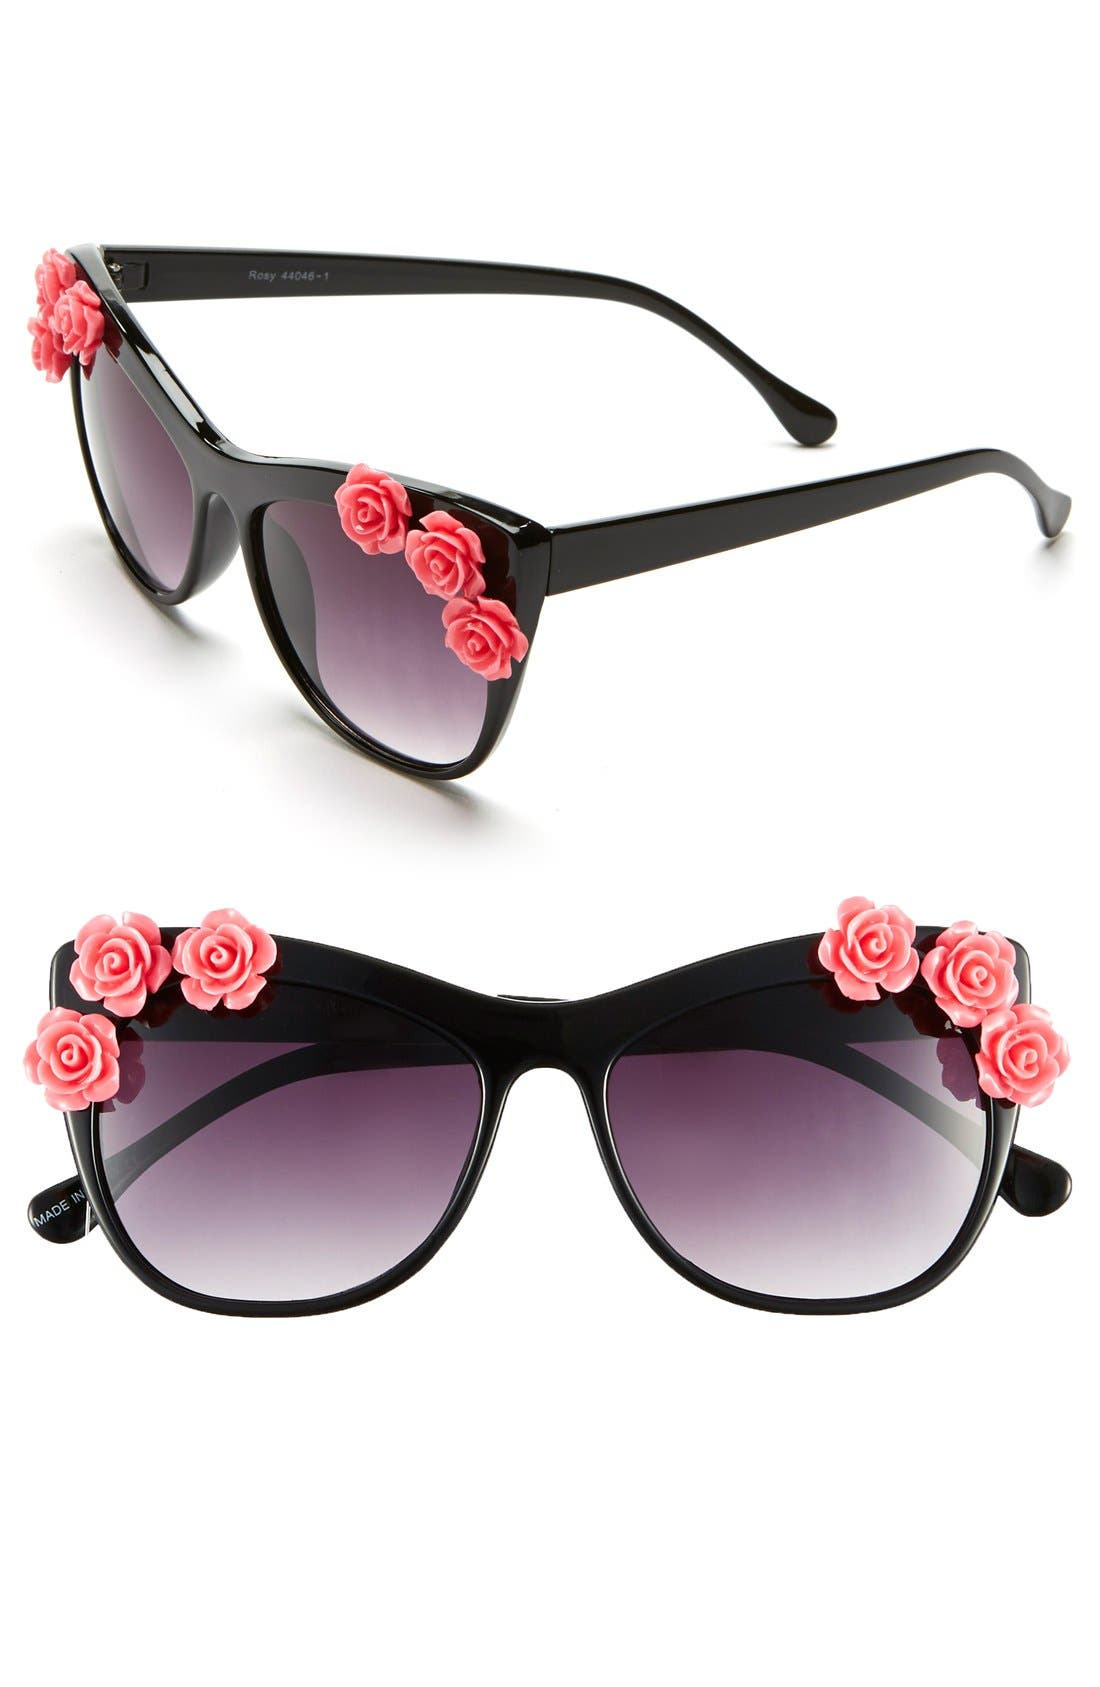 Alternate Image 1 Selected - BP. 55mm Flower Embellished Sunglasses